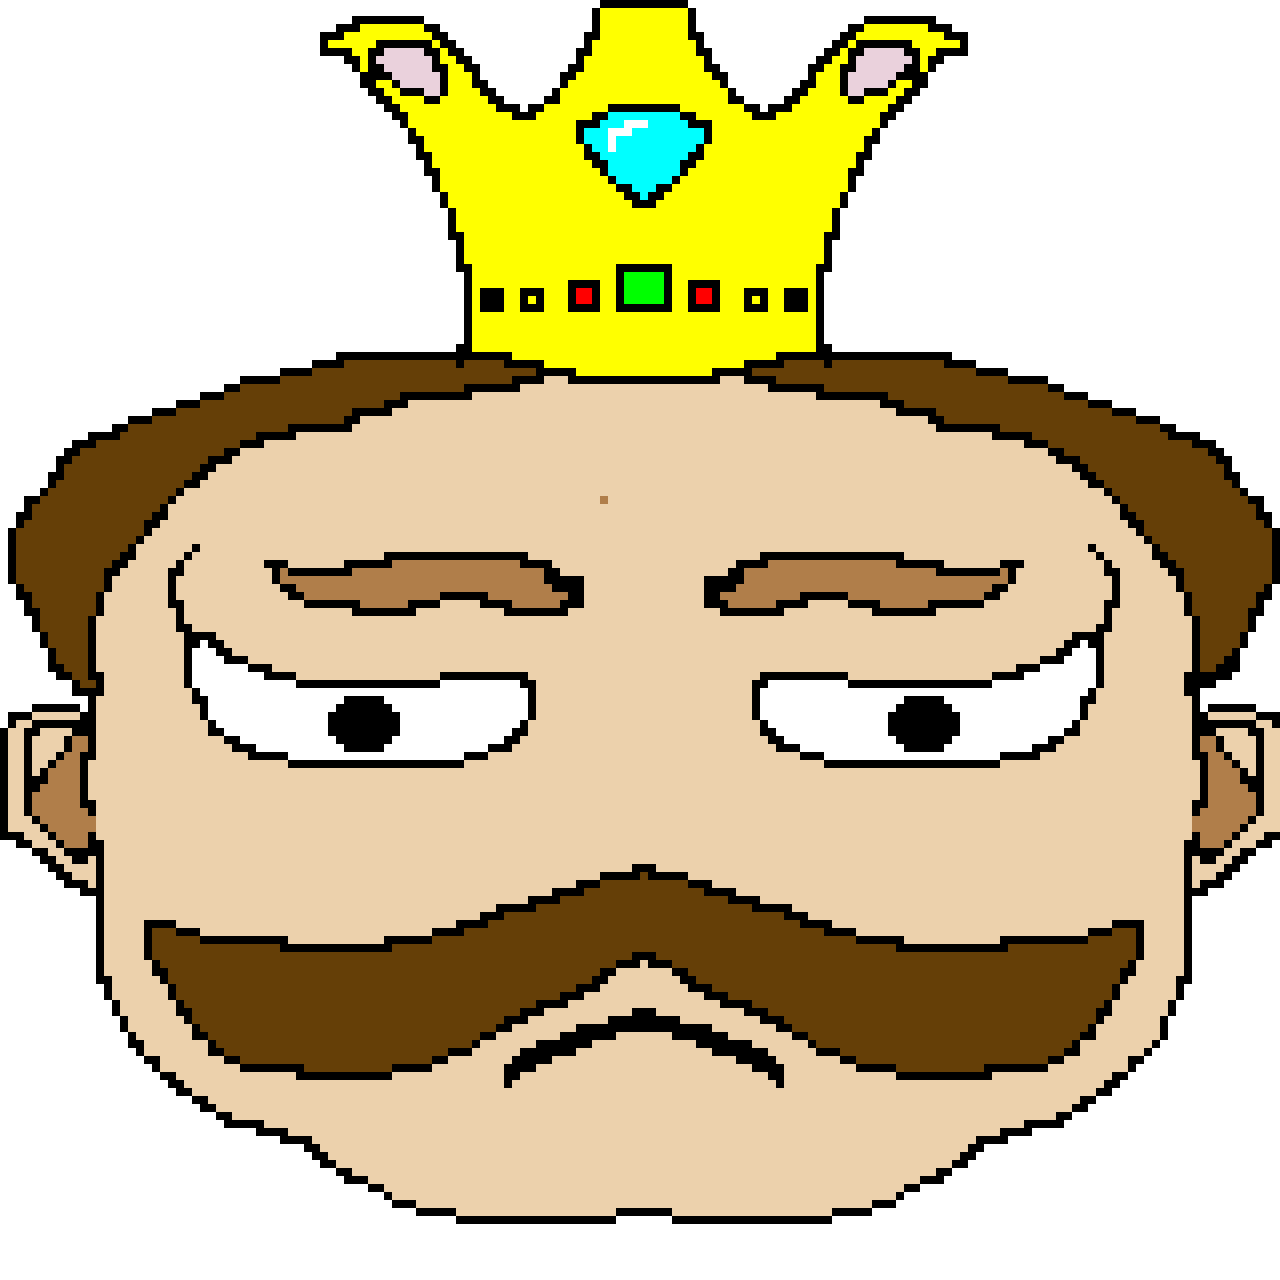 i made this and i call it king